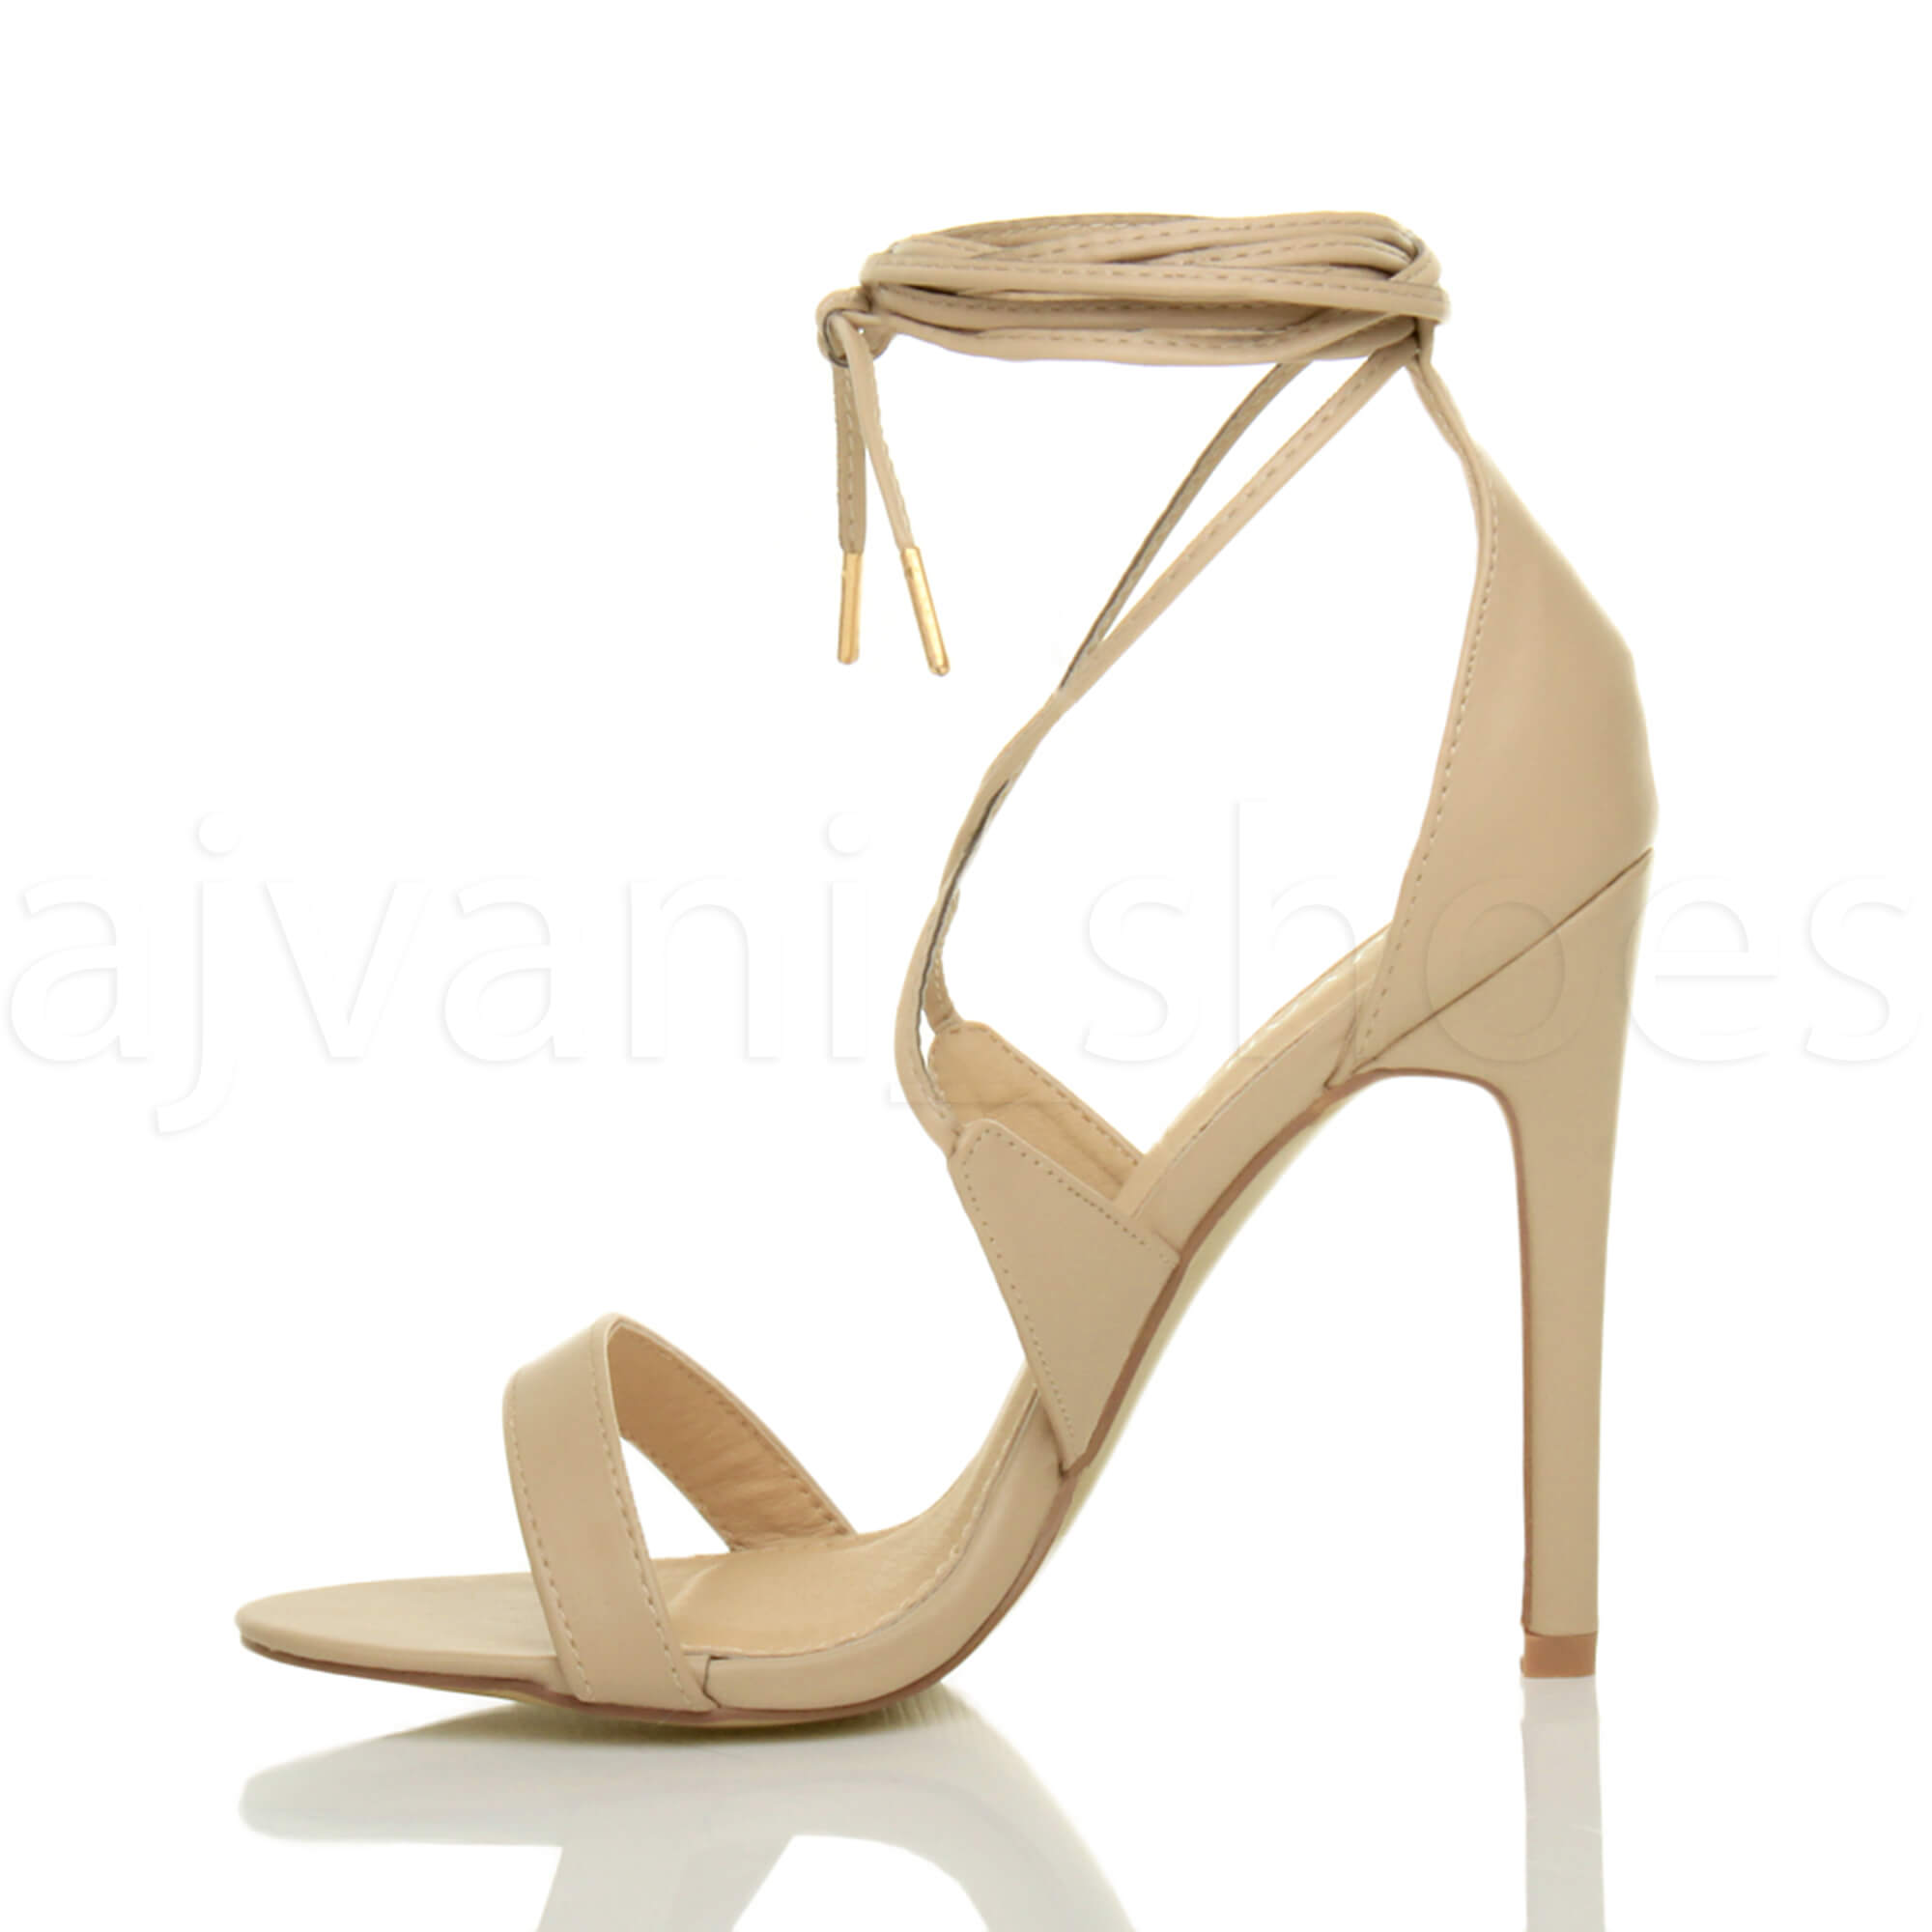 WOMENS-LADIES-HIGH-HEEL-BARELY-THERE-STRAPPY-LACE-TIE-UP-SANDALS-SHOES-SIZE thumbnail 34